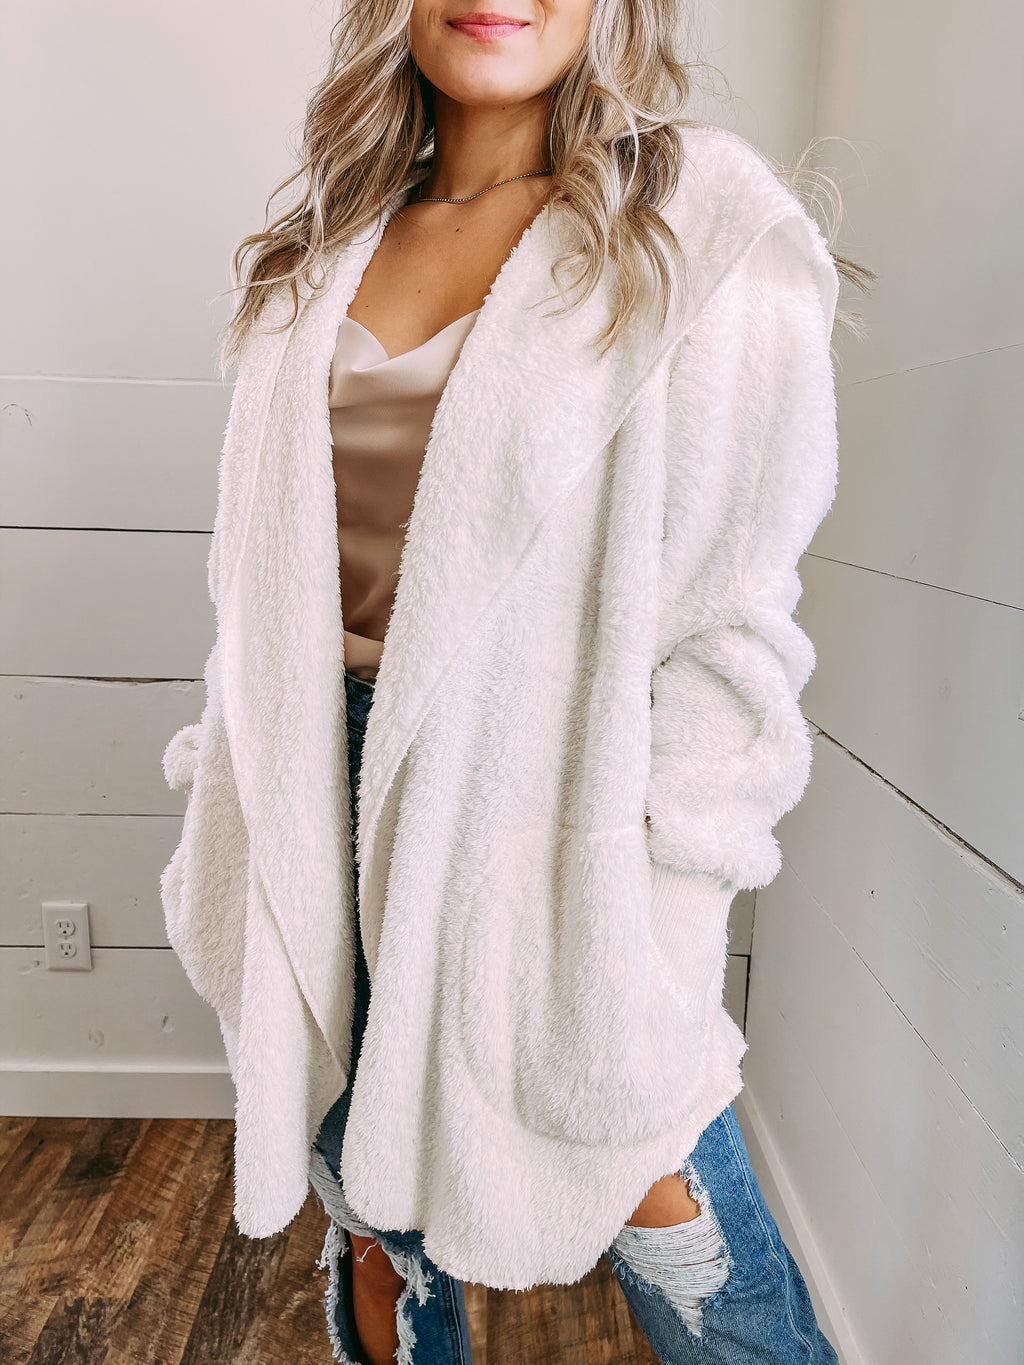 Keep Me Cozy Fur Jacket - white